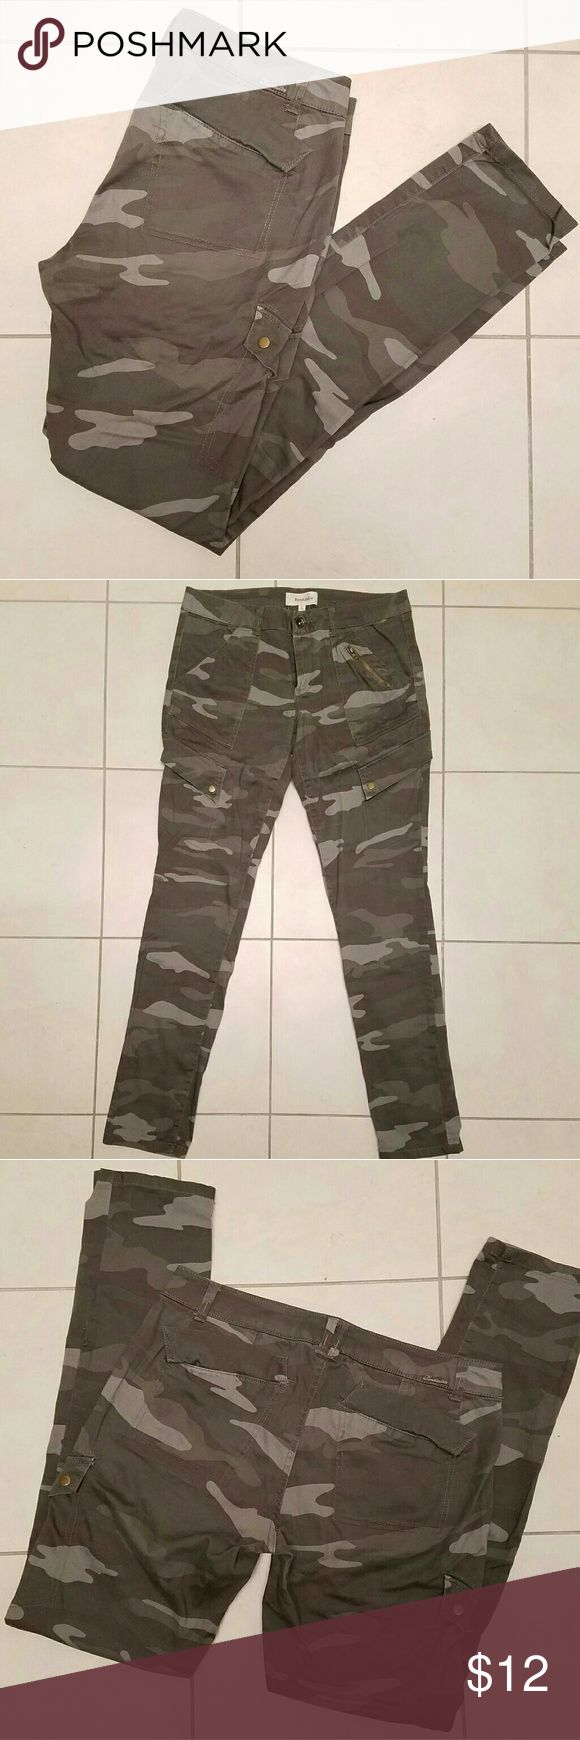 Rewind Camouflage Skinny Jeans Great condition, only worn once, size 7 Rewind Jeans Skinny